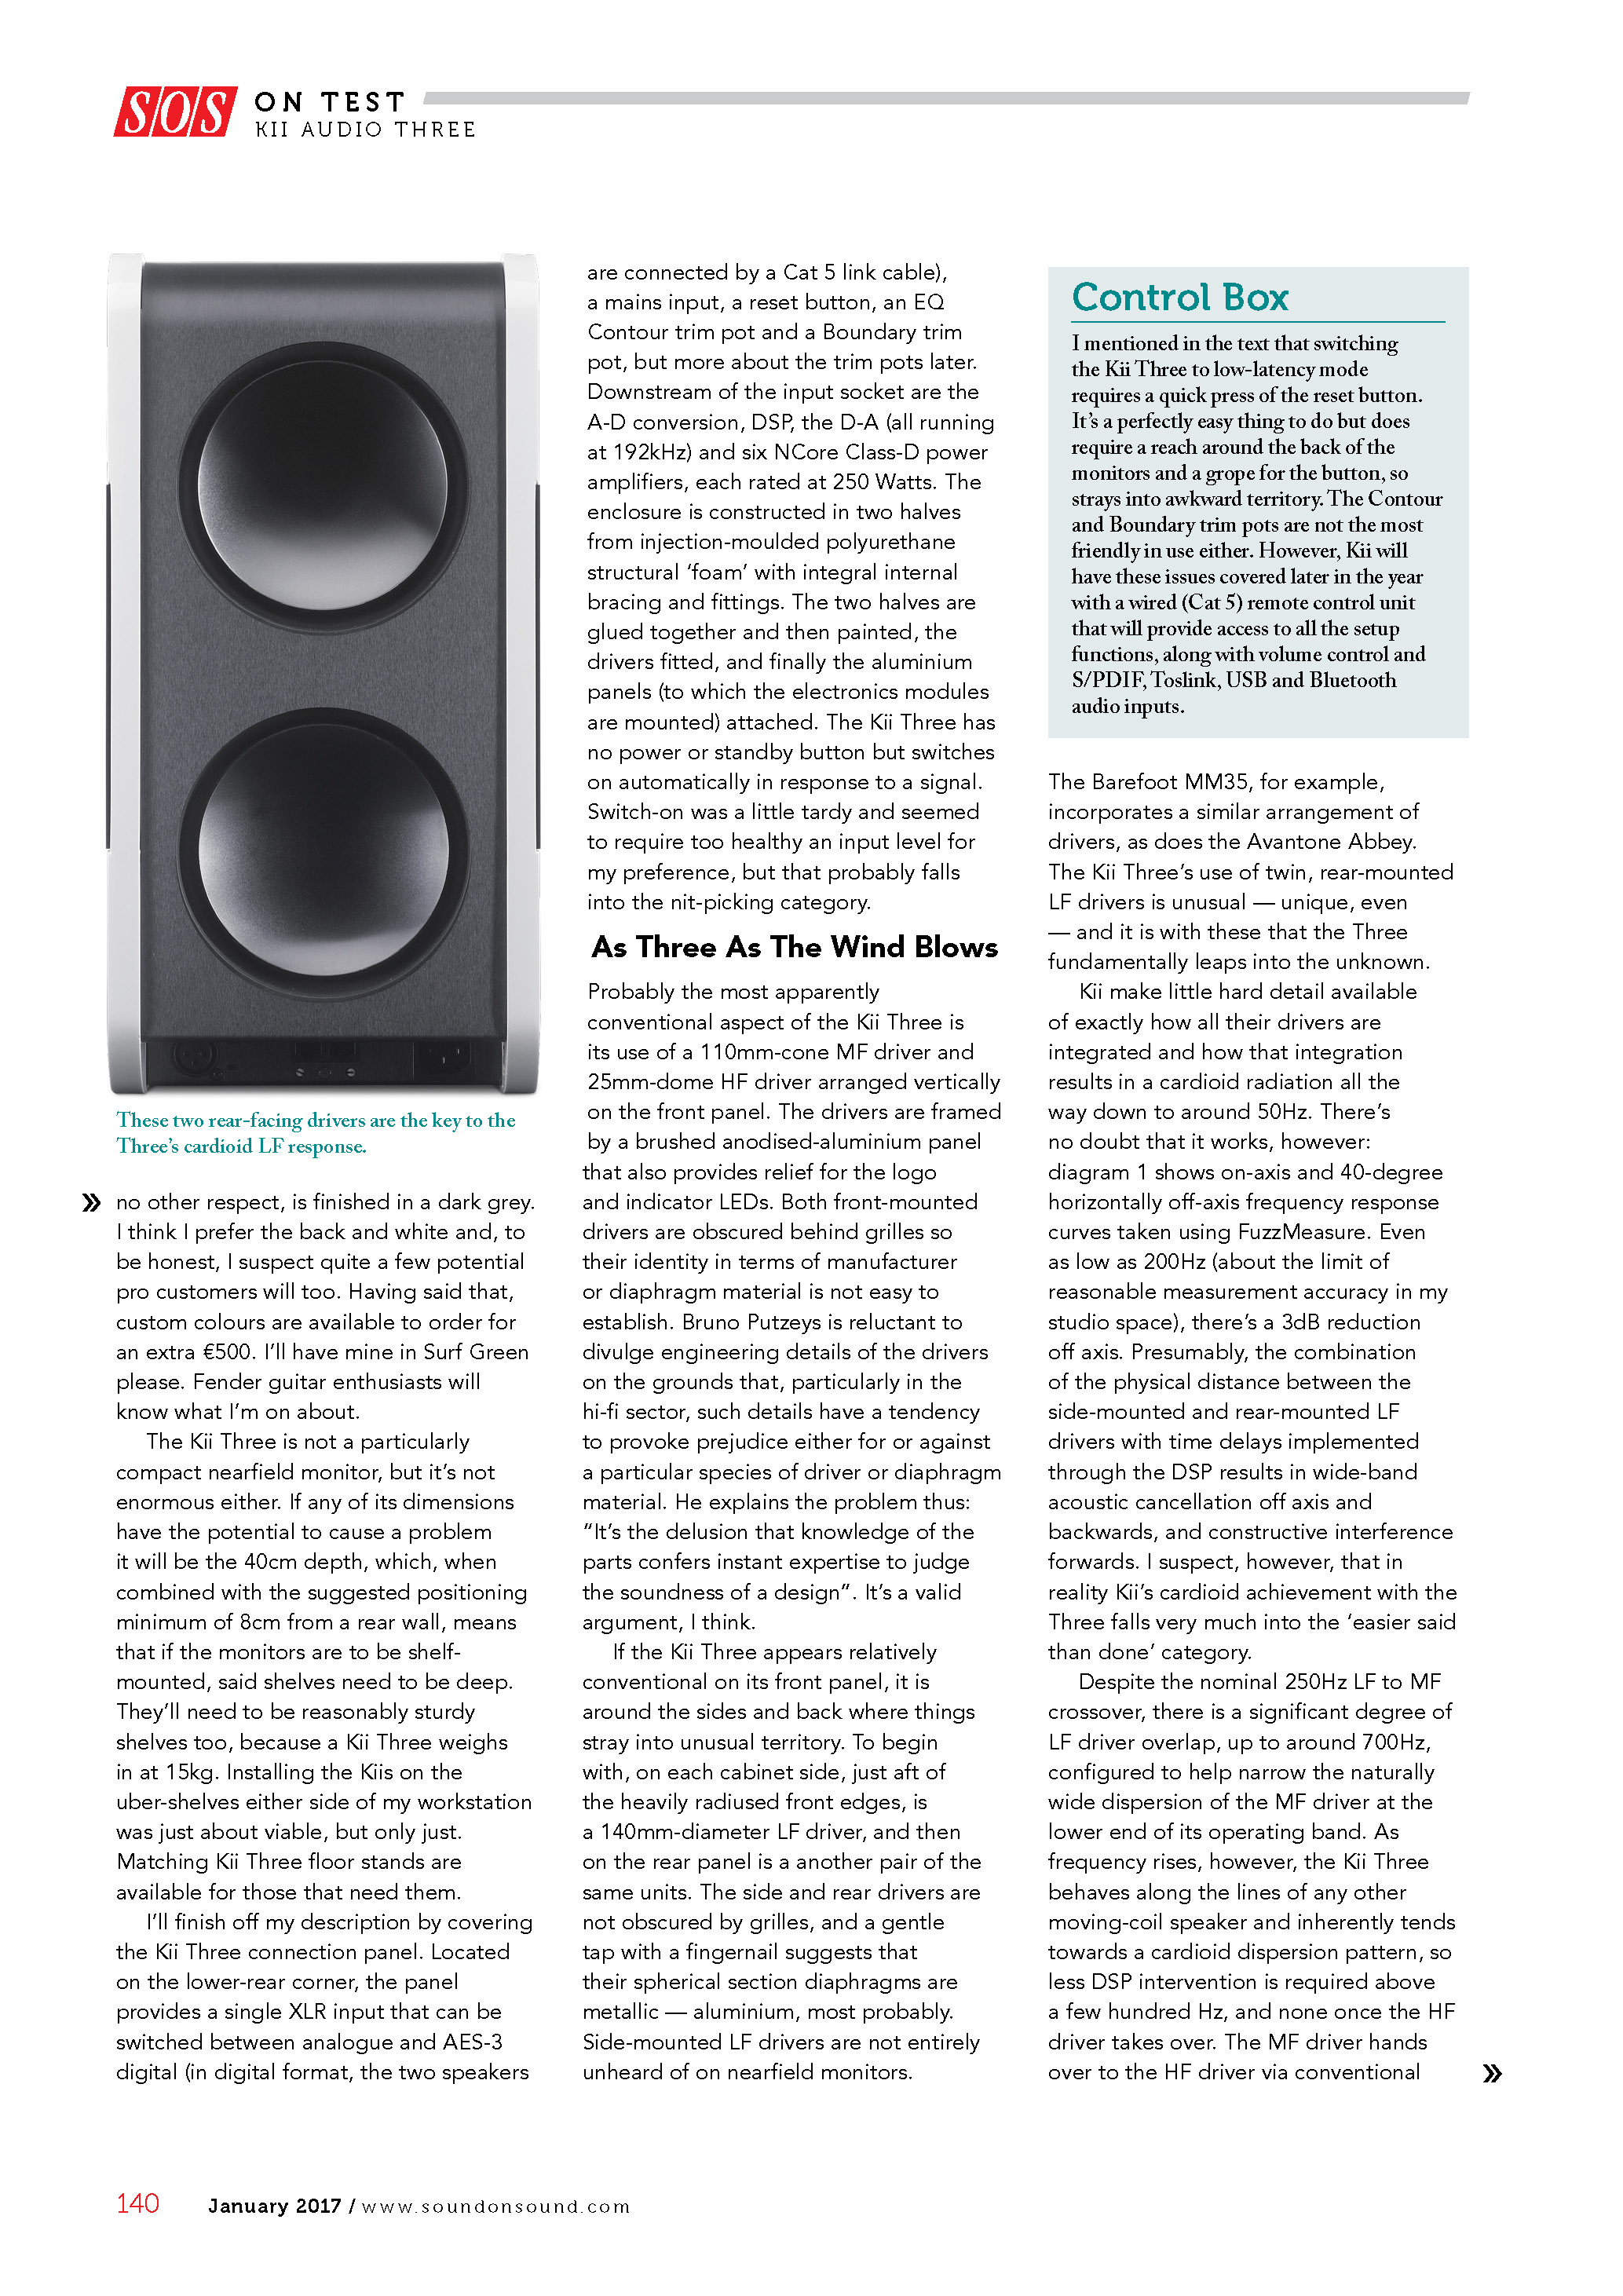 soundonsound012017kiithree_Page_3.jpg